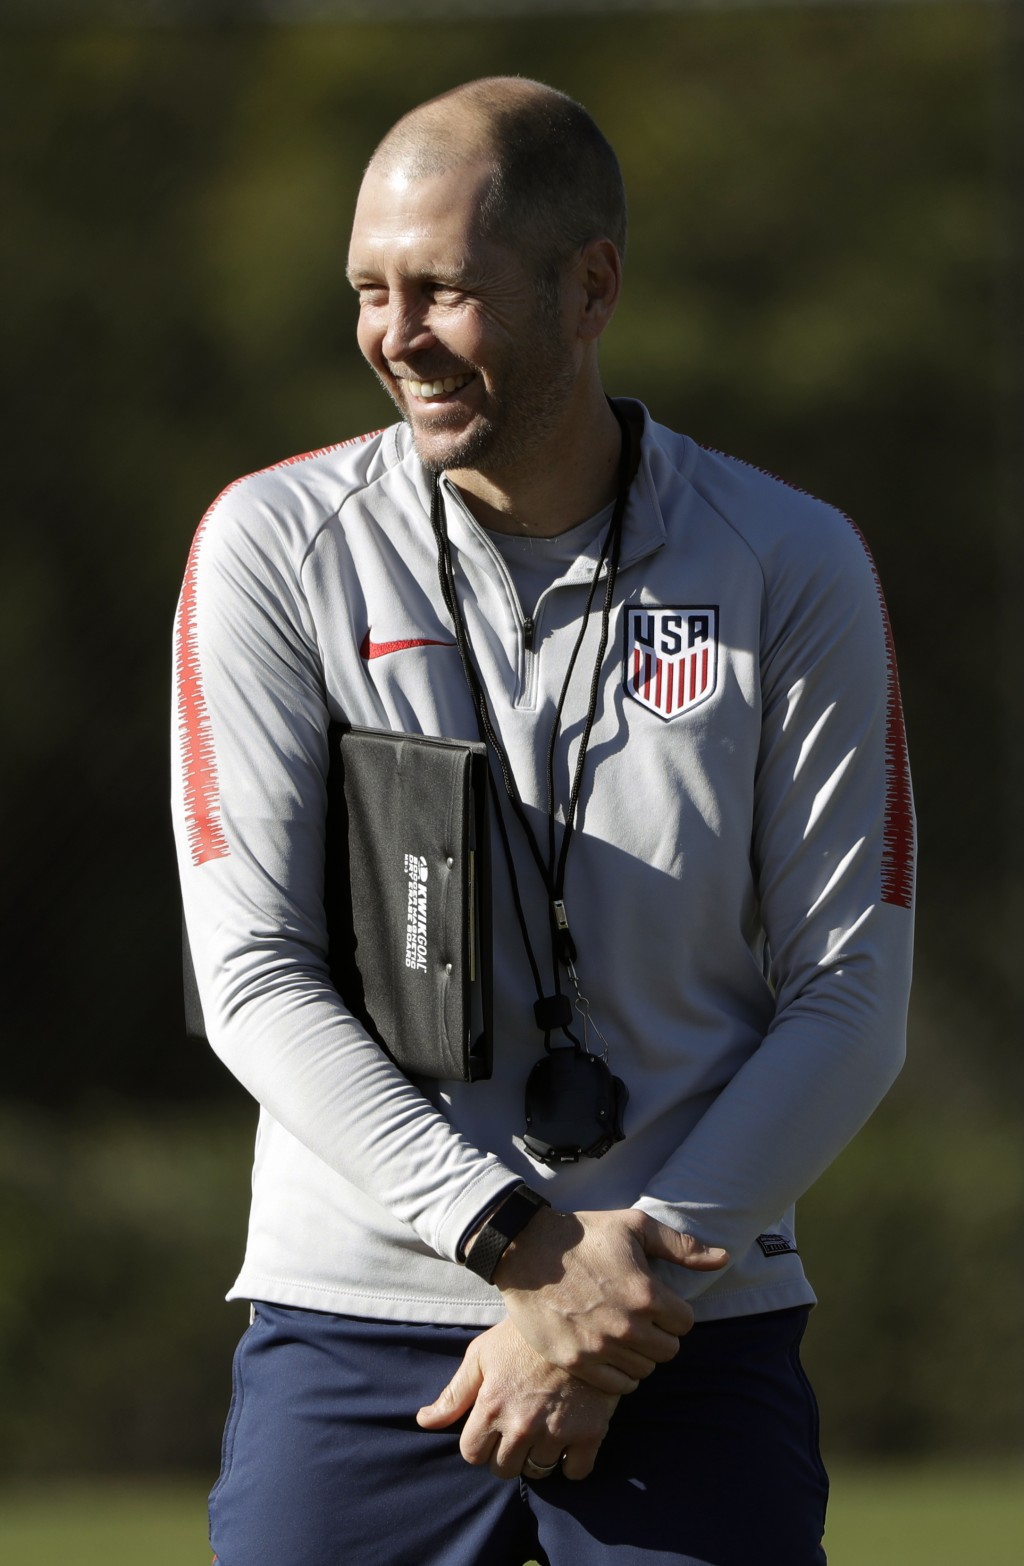 United States head coach Gregg Berhalter smiles during soccer training camp Monday, Jan. 7, 2019, in Chula Vista, Calif. (AP Photo/Marcio Jose Sanchez